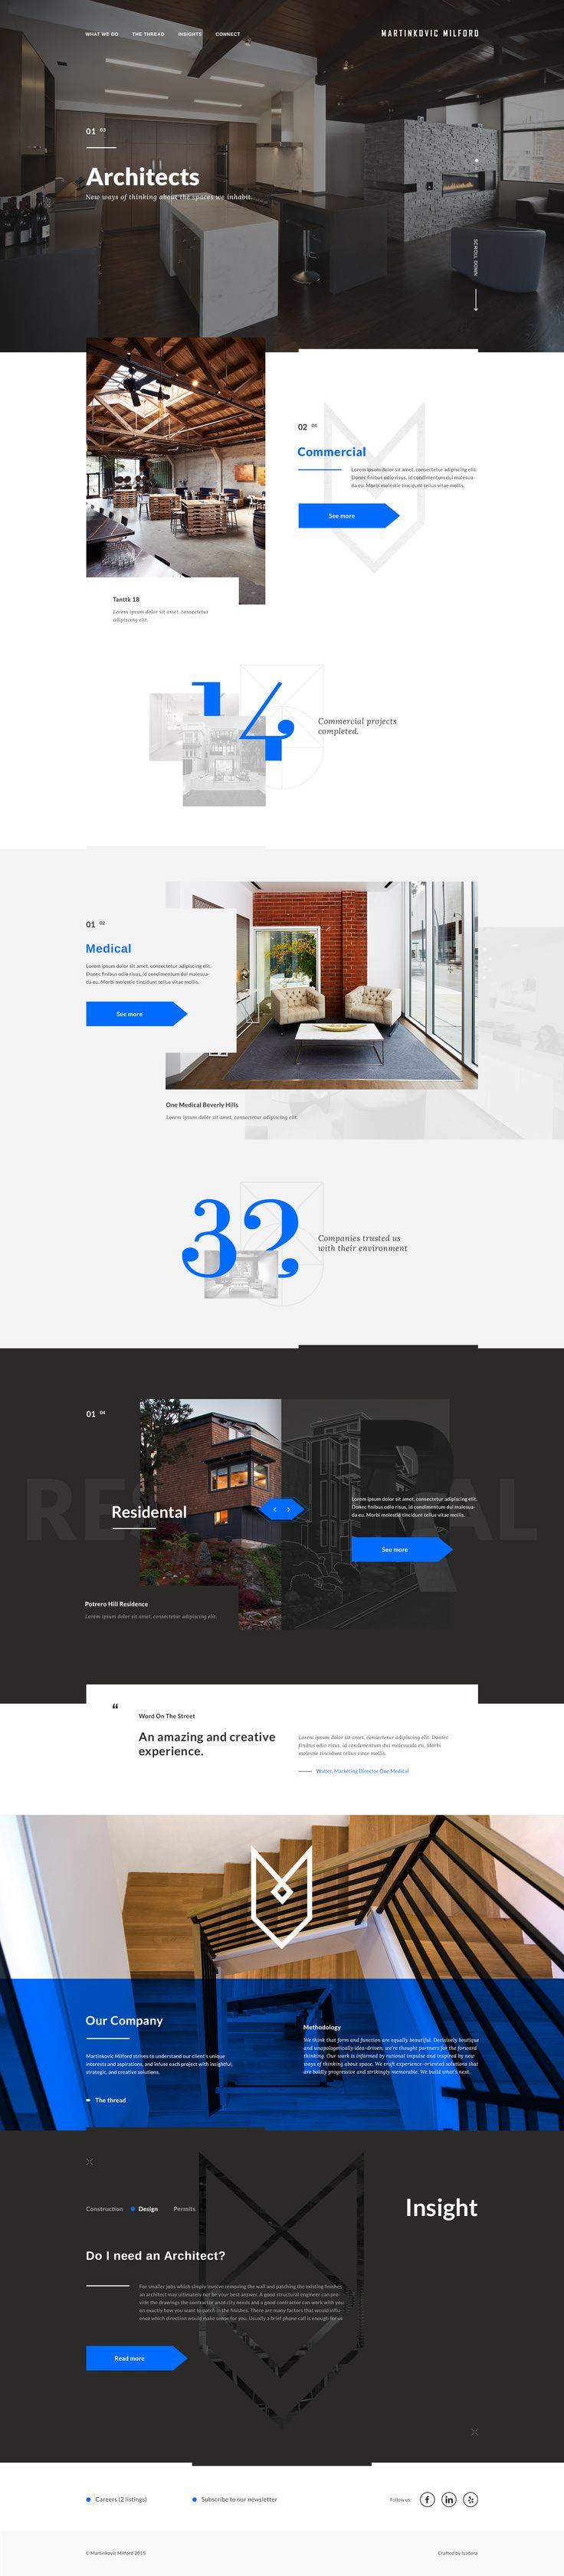 I LOVE the typography for this webpage! Especially those numbers!! Those are some super sexy numbers, don't you think?? | Martinkovic homepage